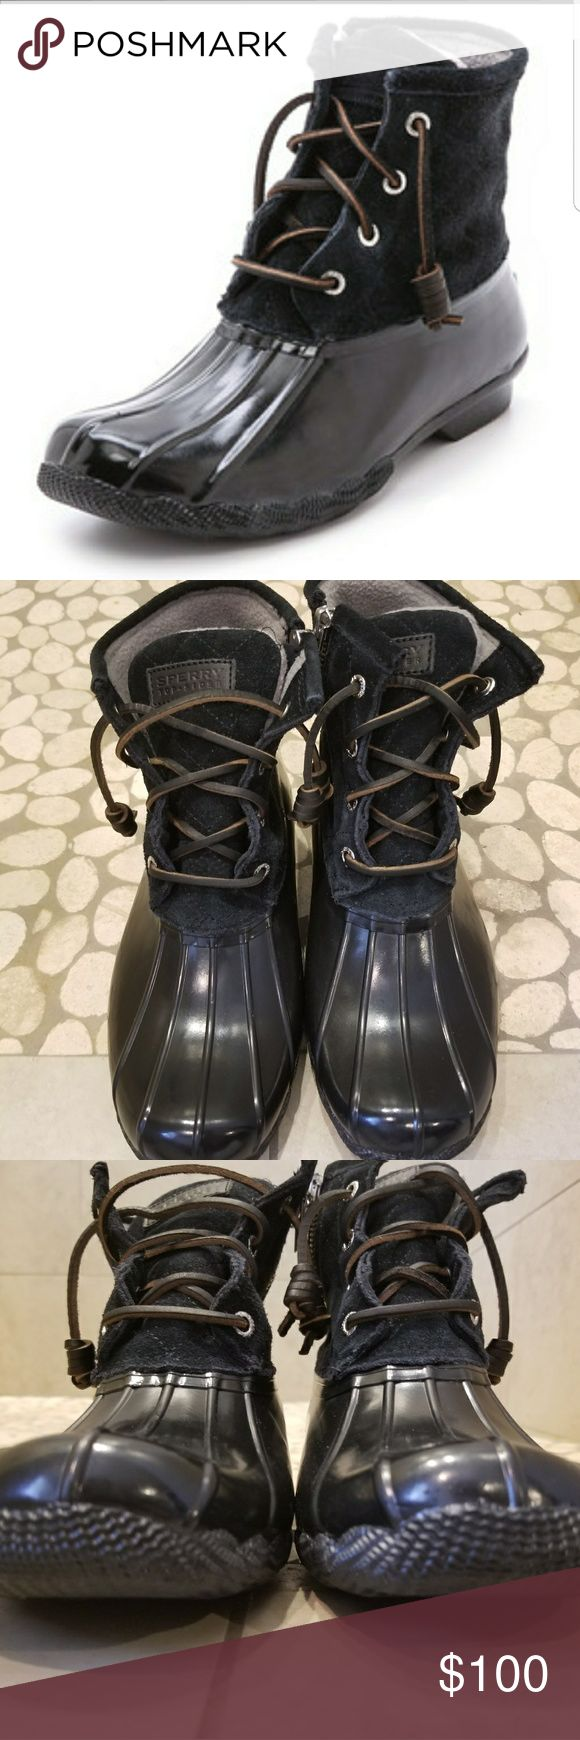 Sperry Top Sider Saltwater Rubber Duck Rain Boots Pre owned but still in good condition  Comes from a pet and smoke free home   All sales are final but feel free to ask as many questions as you like and for as many pictures as you like   Thank you and check out my other listings Sperry Shoes Winter & Rain Boots